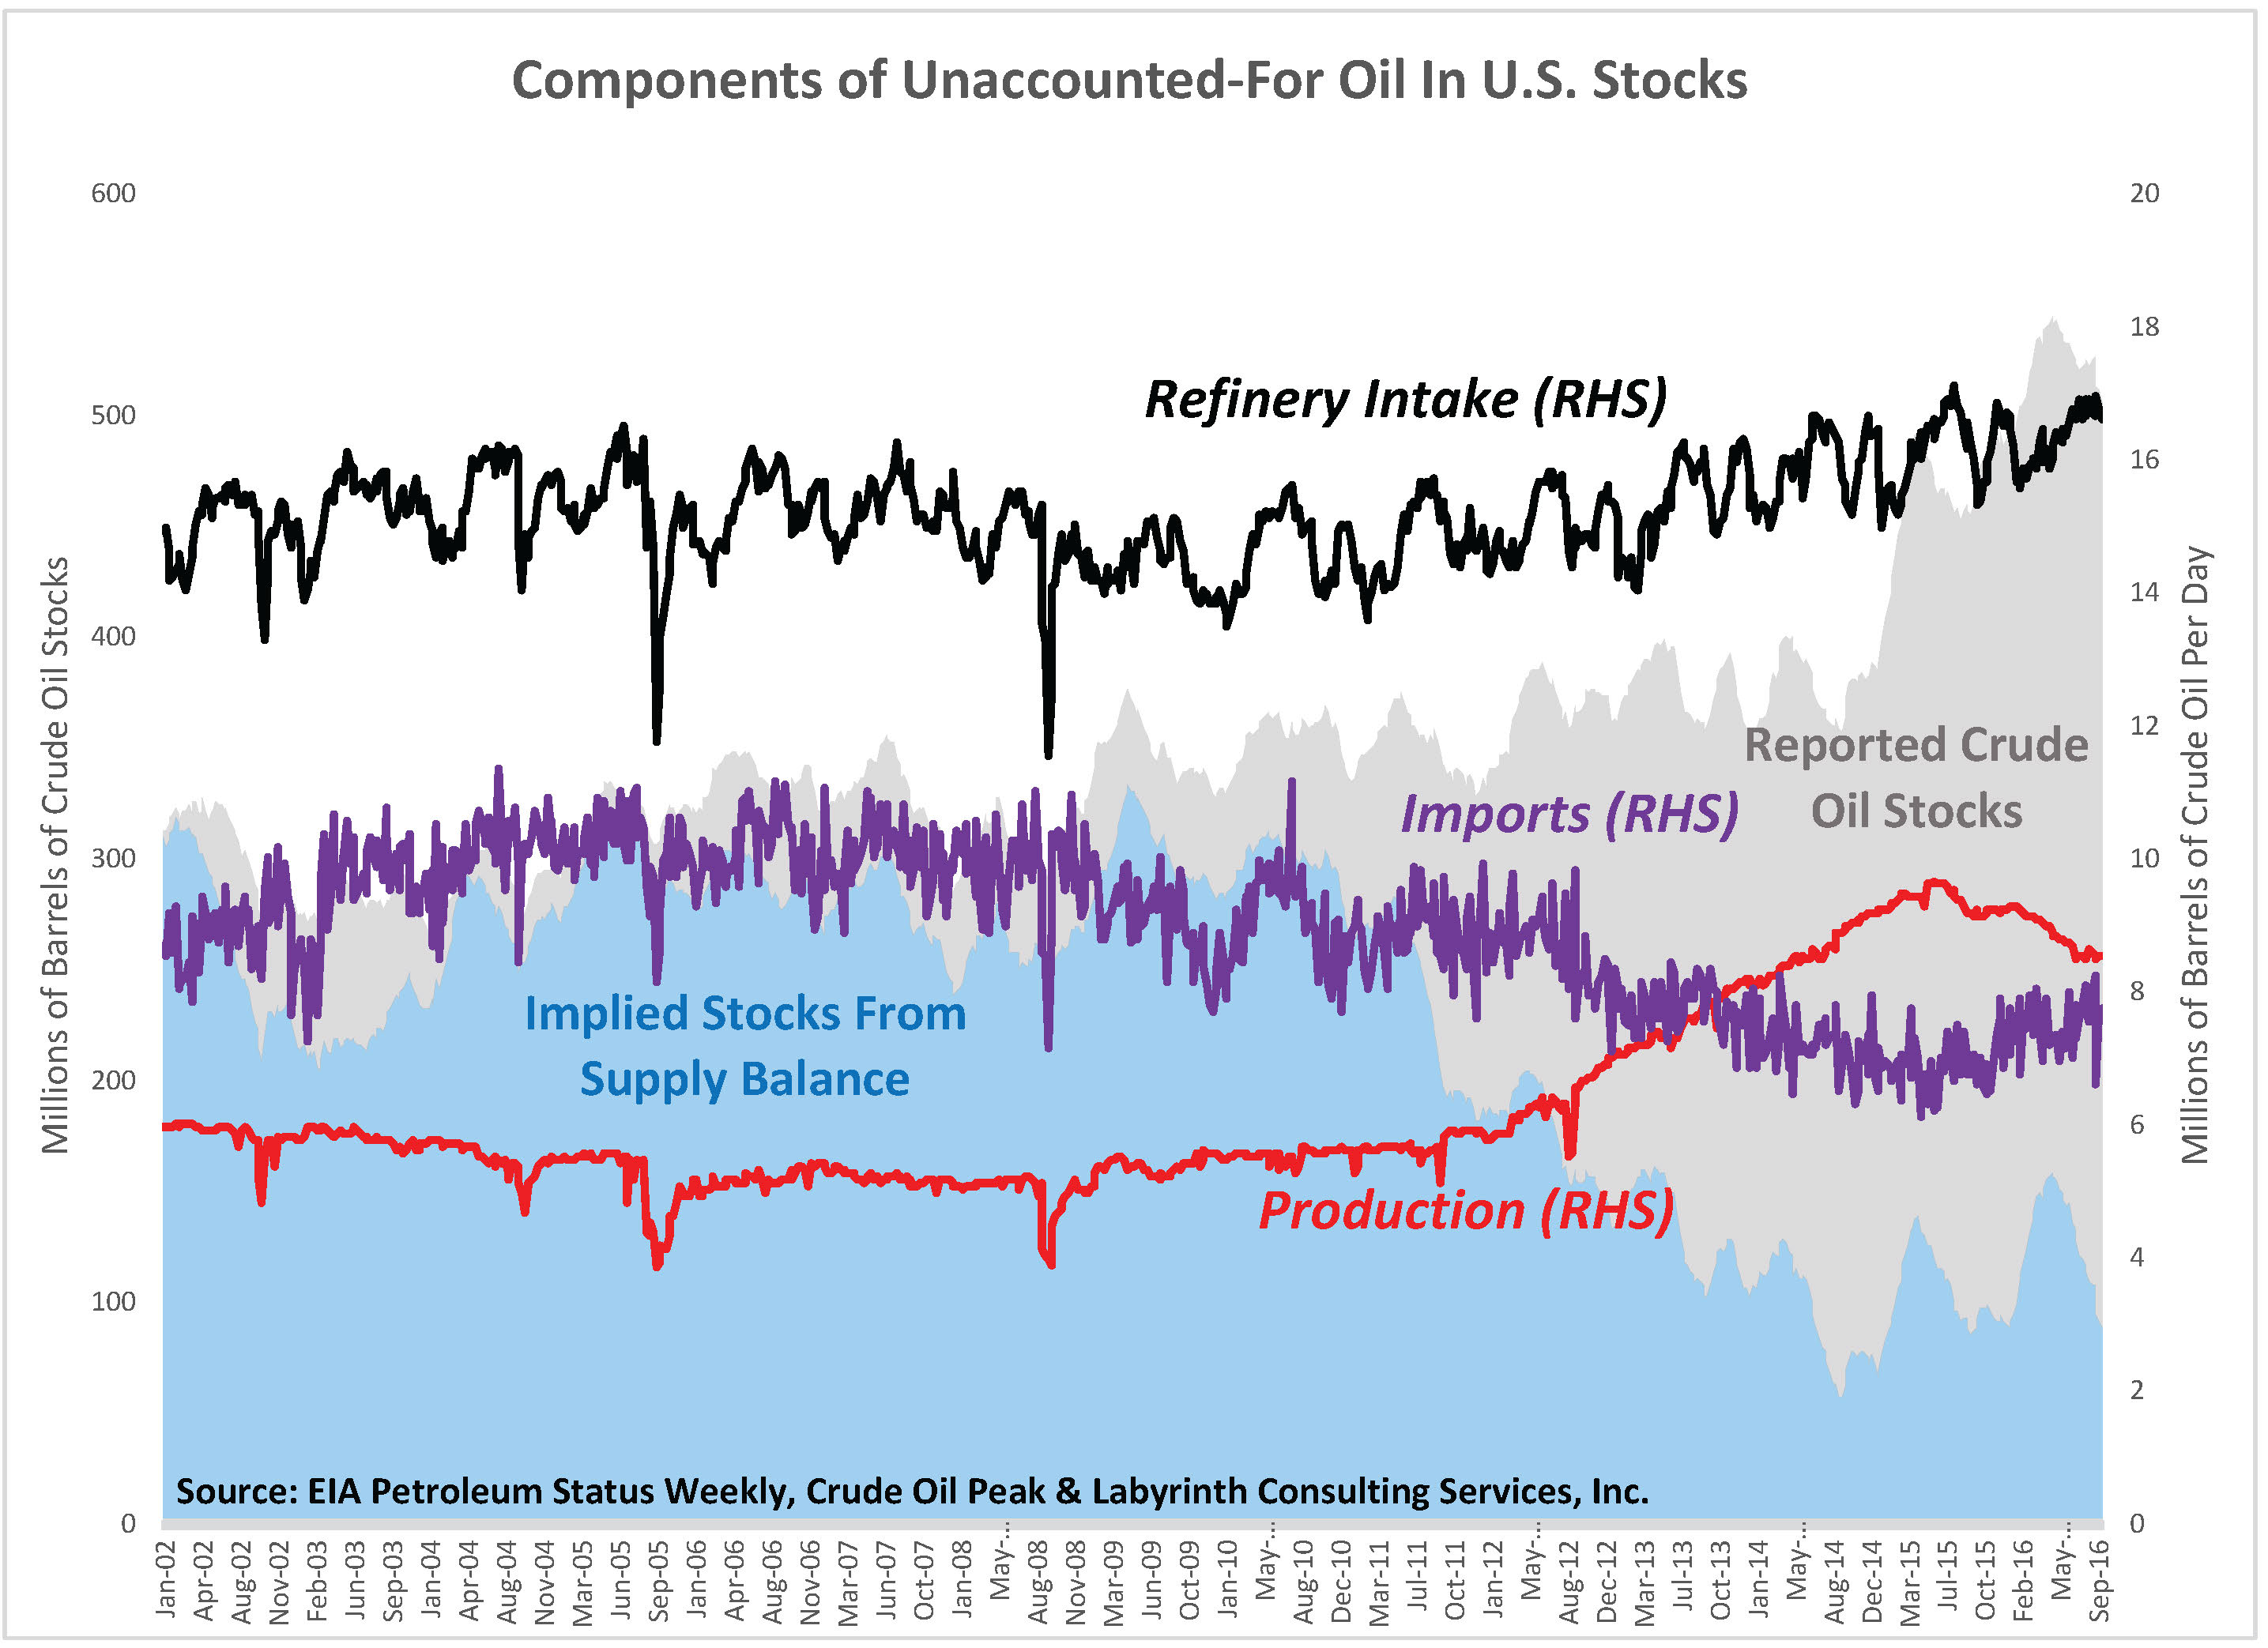 figure-7-components-of-unaccounted-for-oil-in-u-s-stocks